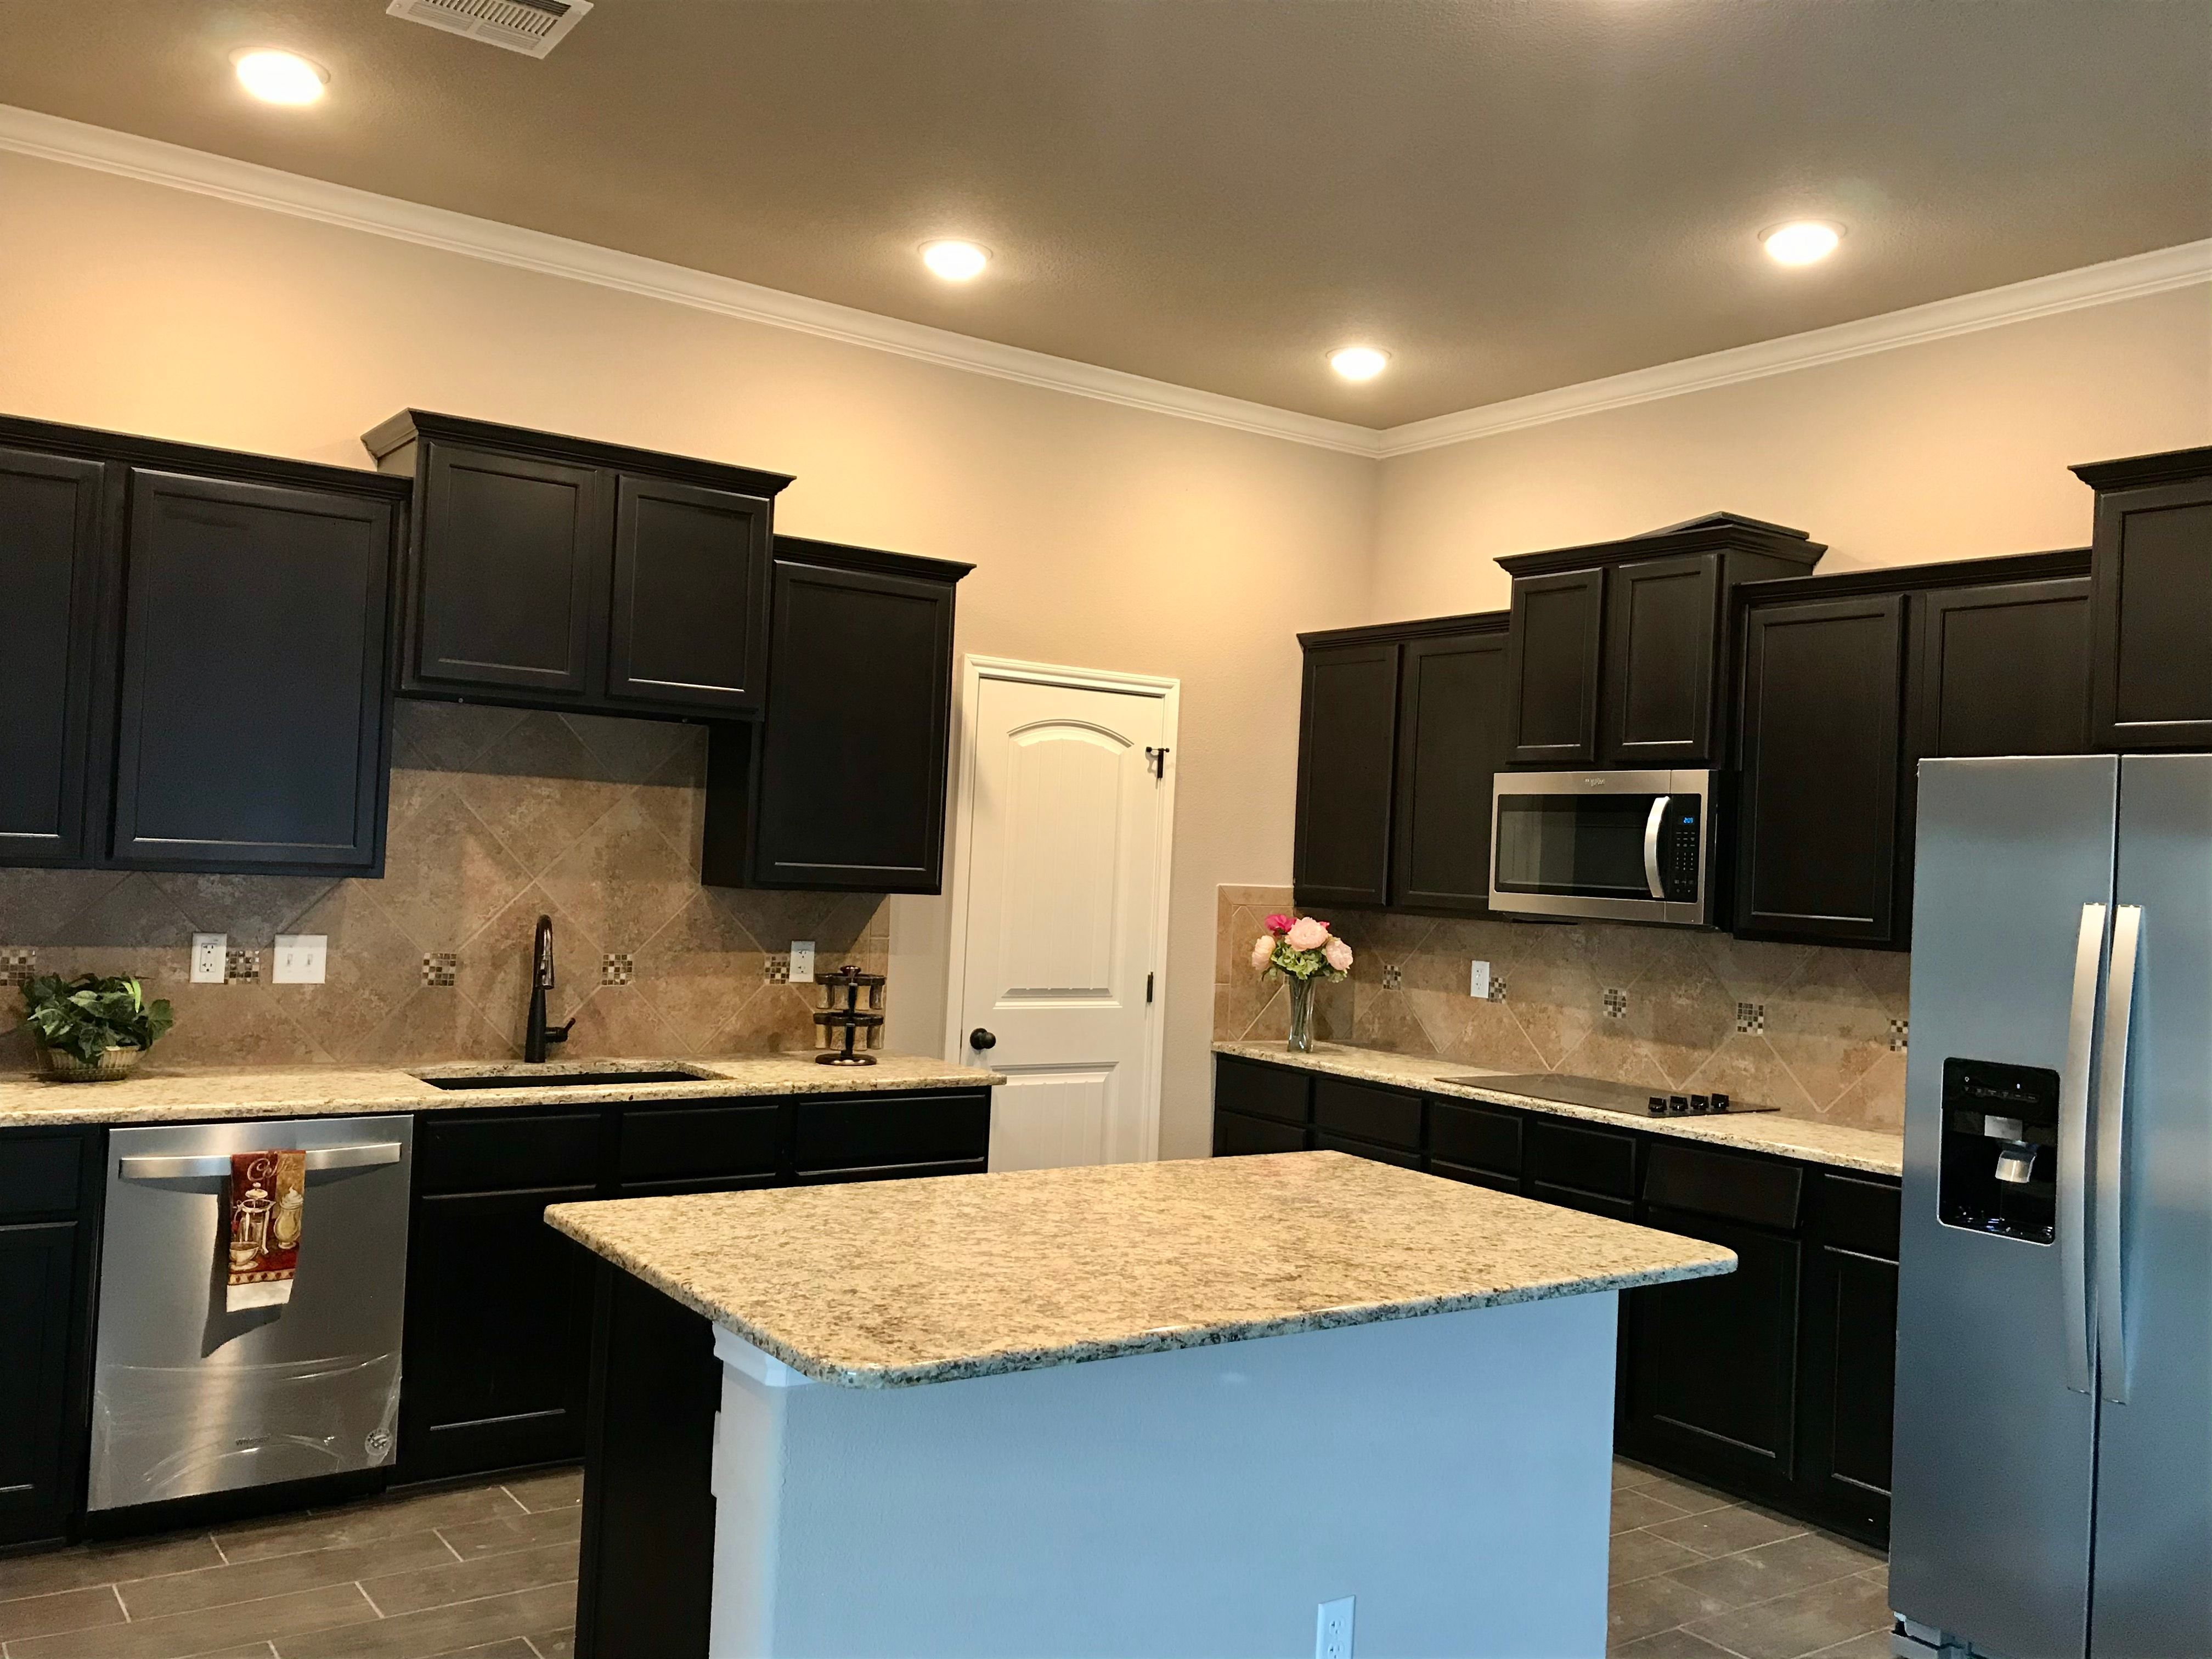 Kitchen featured in the Verde Creek By Ashford Homes in Killeen, TX